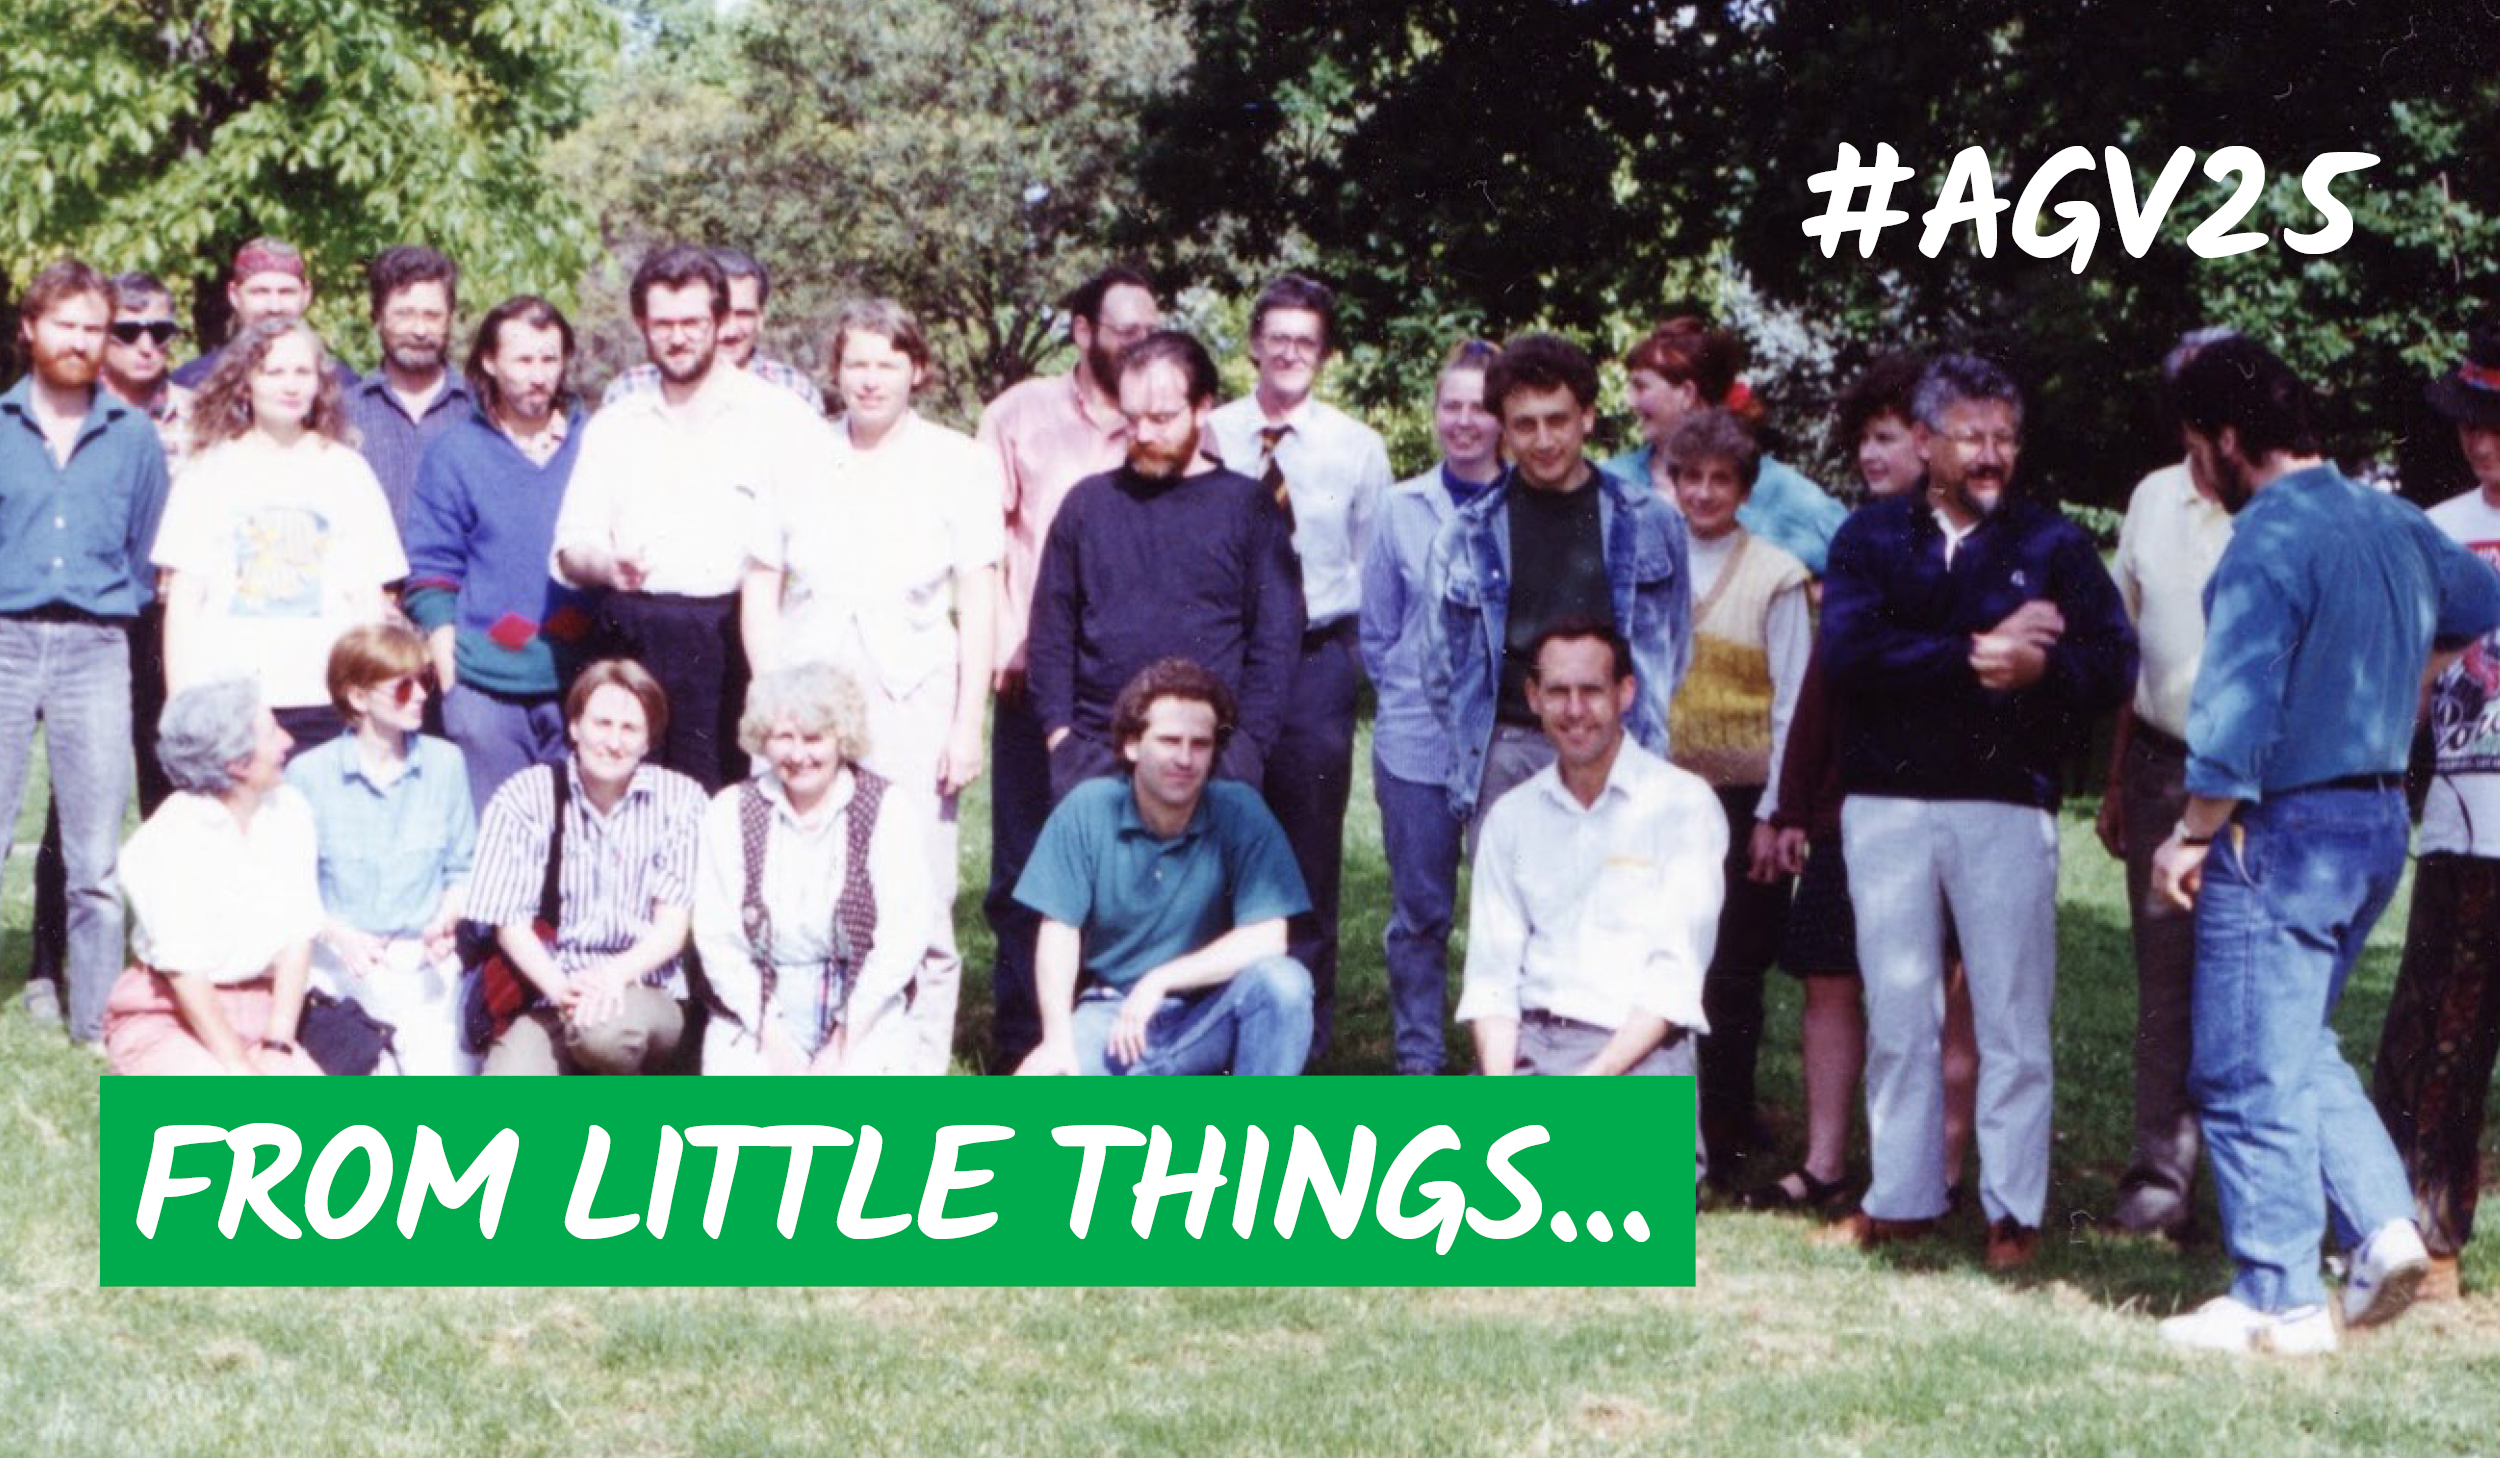 Founding members of the Victorian Greens with Bob Brown in Darling Gardens, 1992